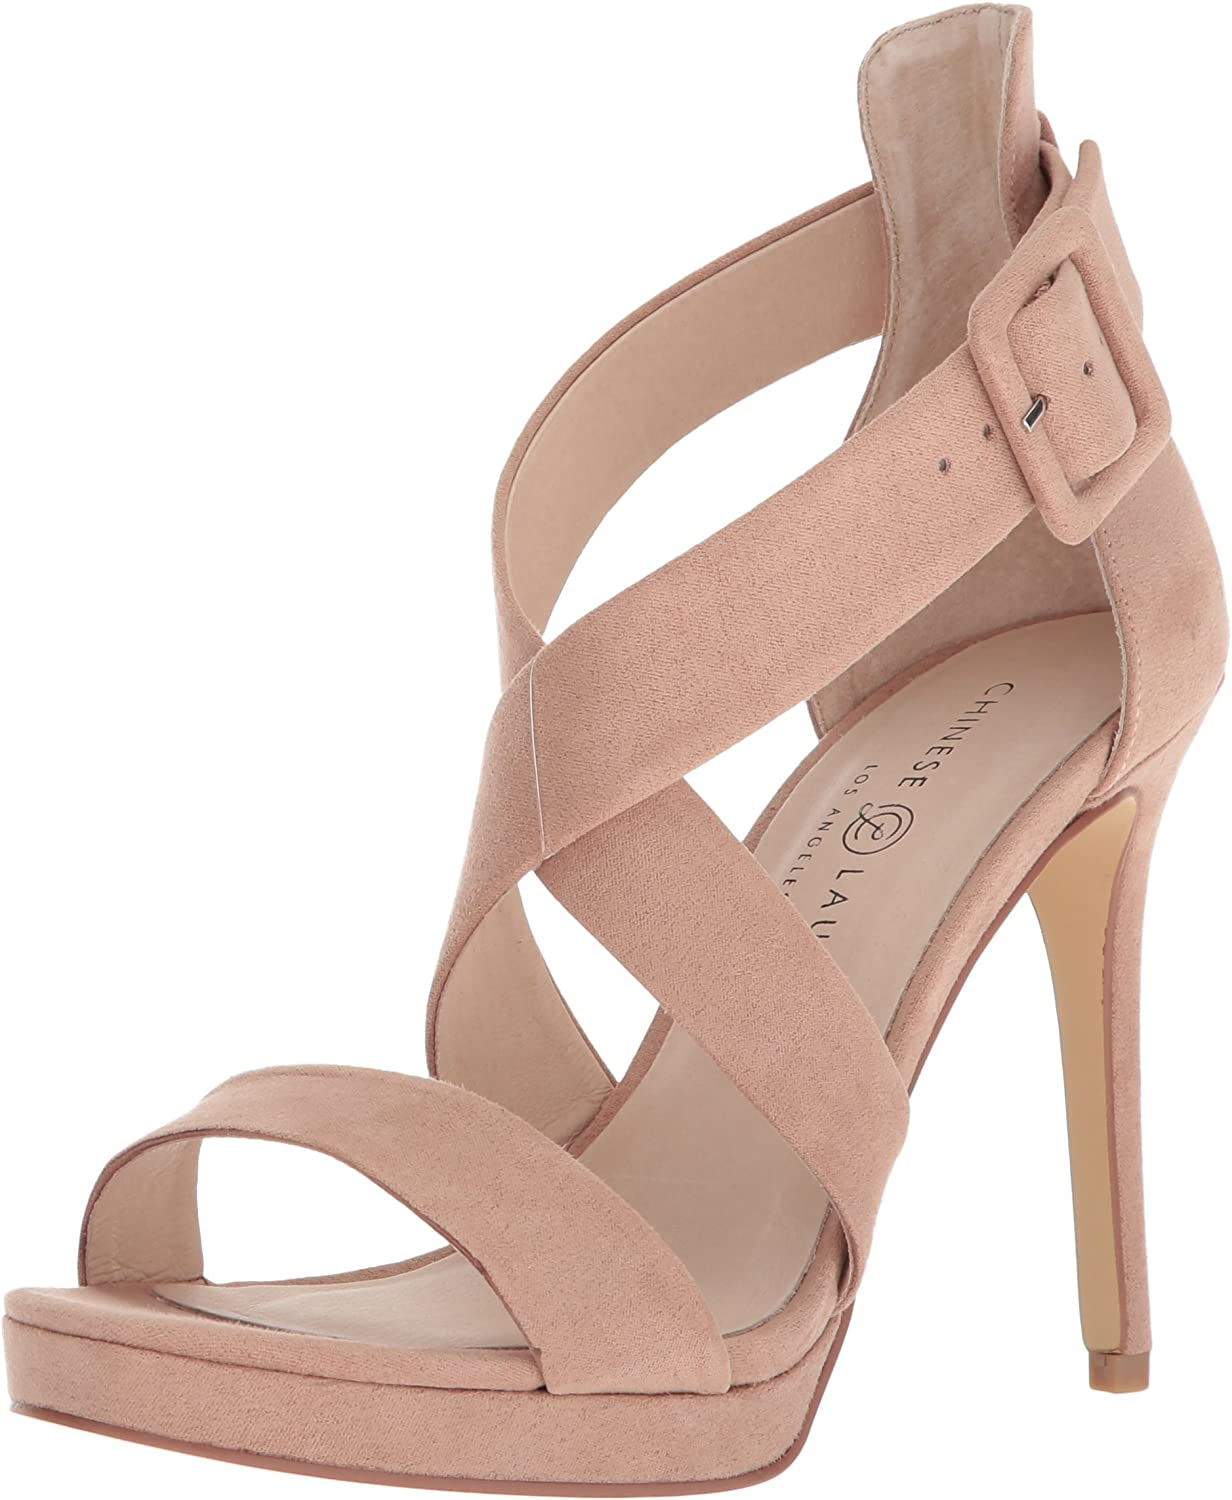 Chinese Laundry Womens Foxie Faux Suede Heels Dress Sandals